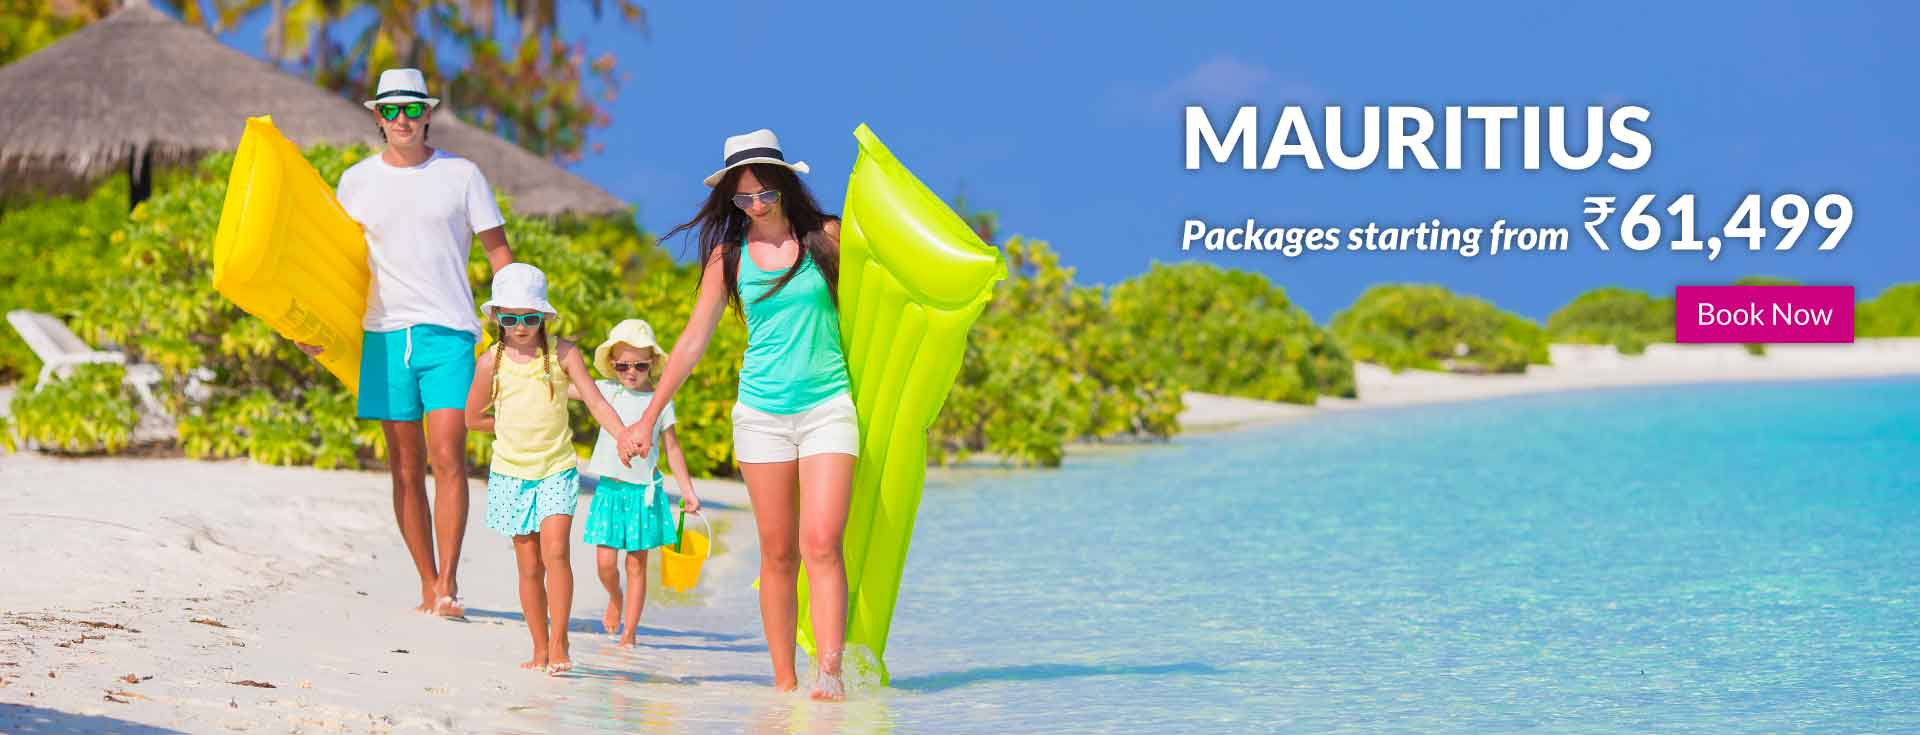 Mauritius Packages